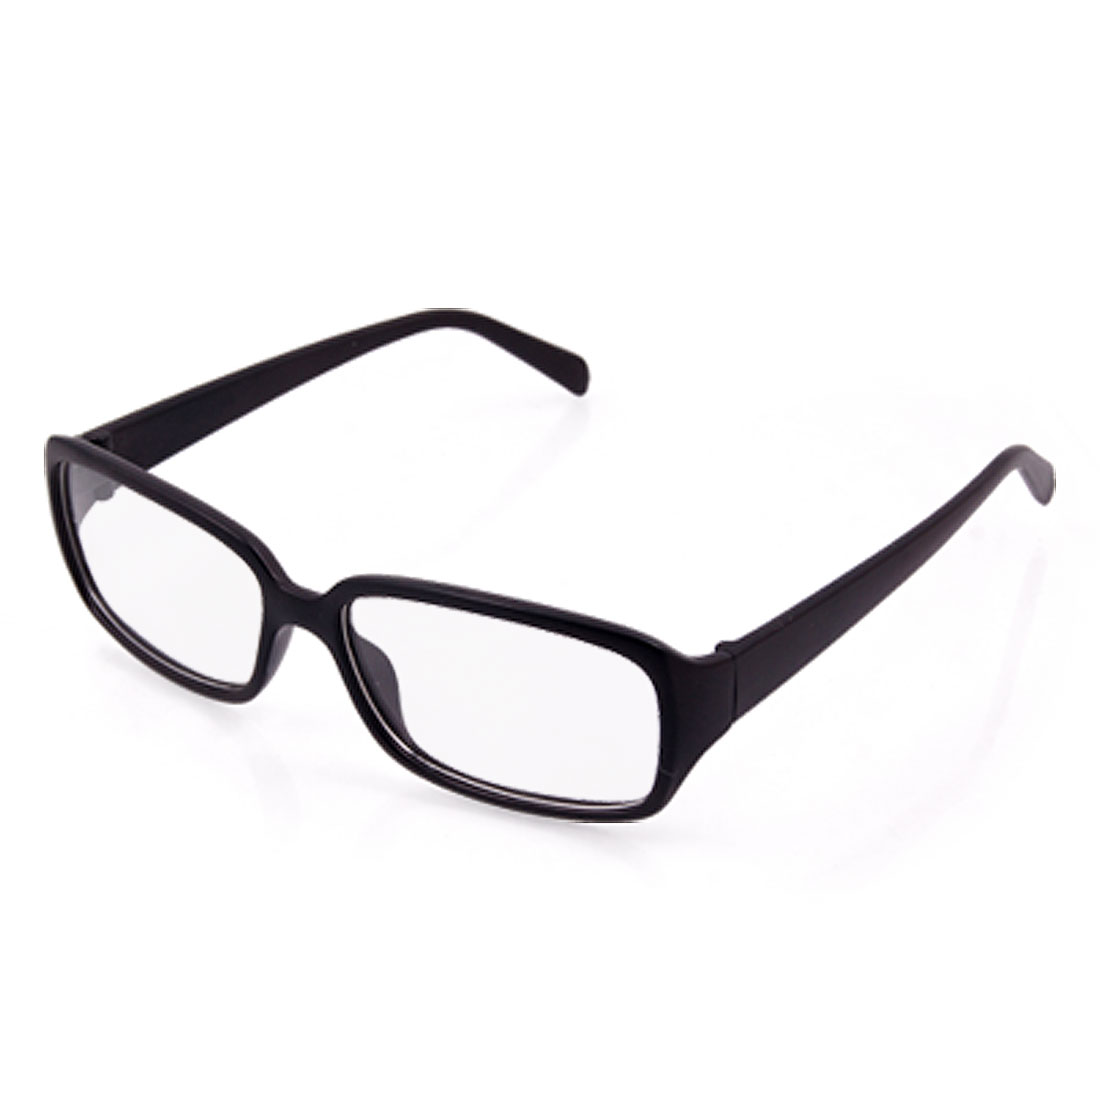 Unisex Black Rubberized Plastic Wide Arms Clear Lens Glasses